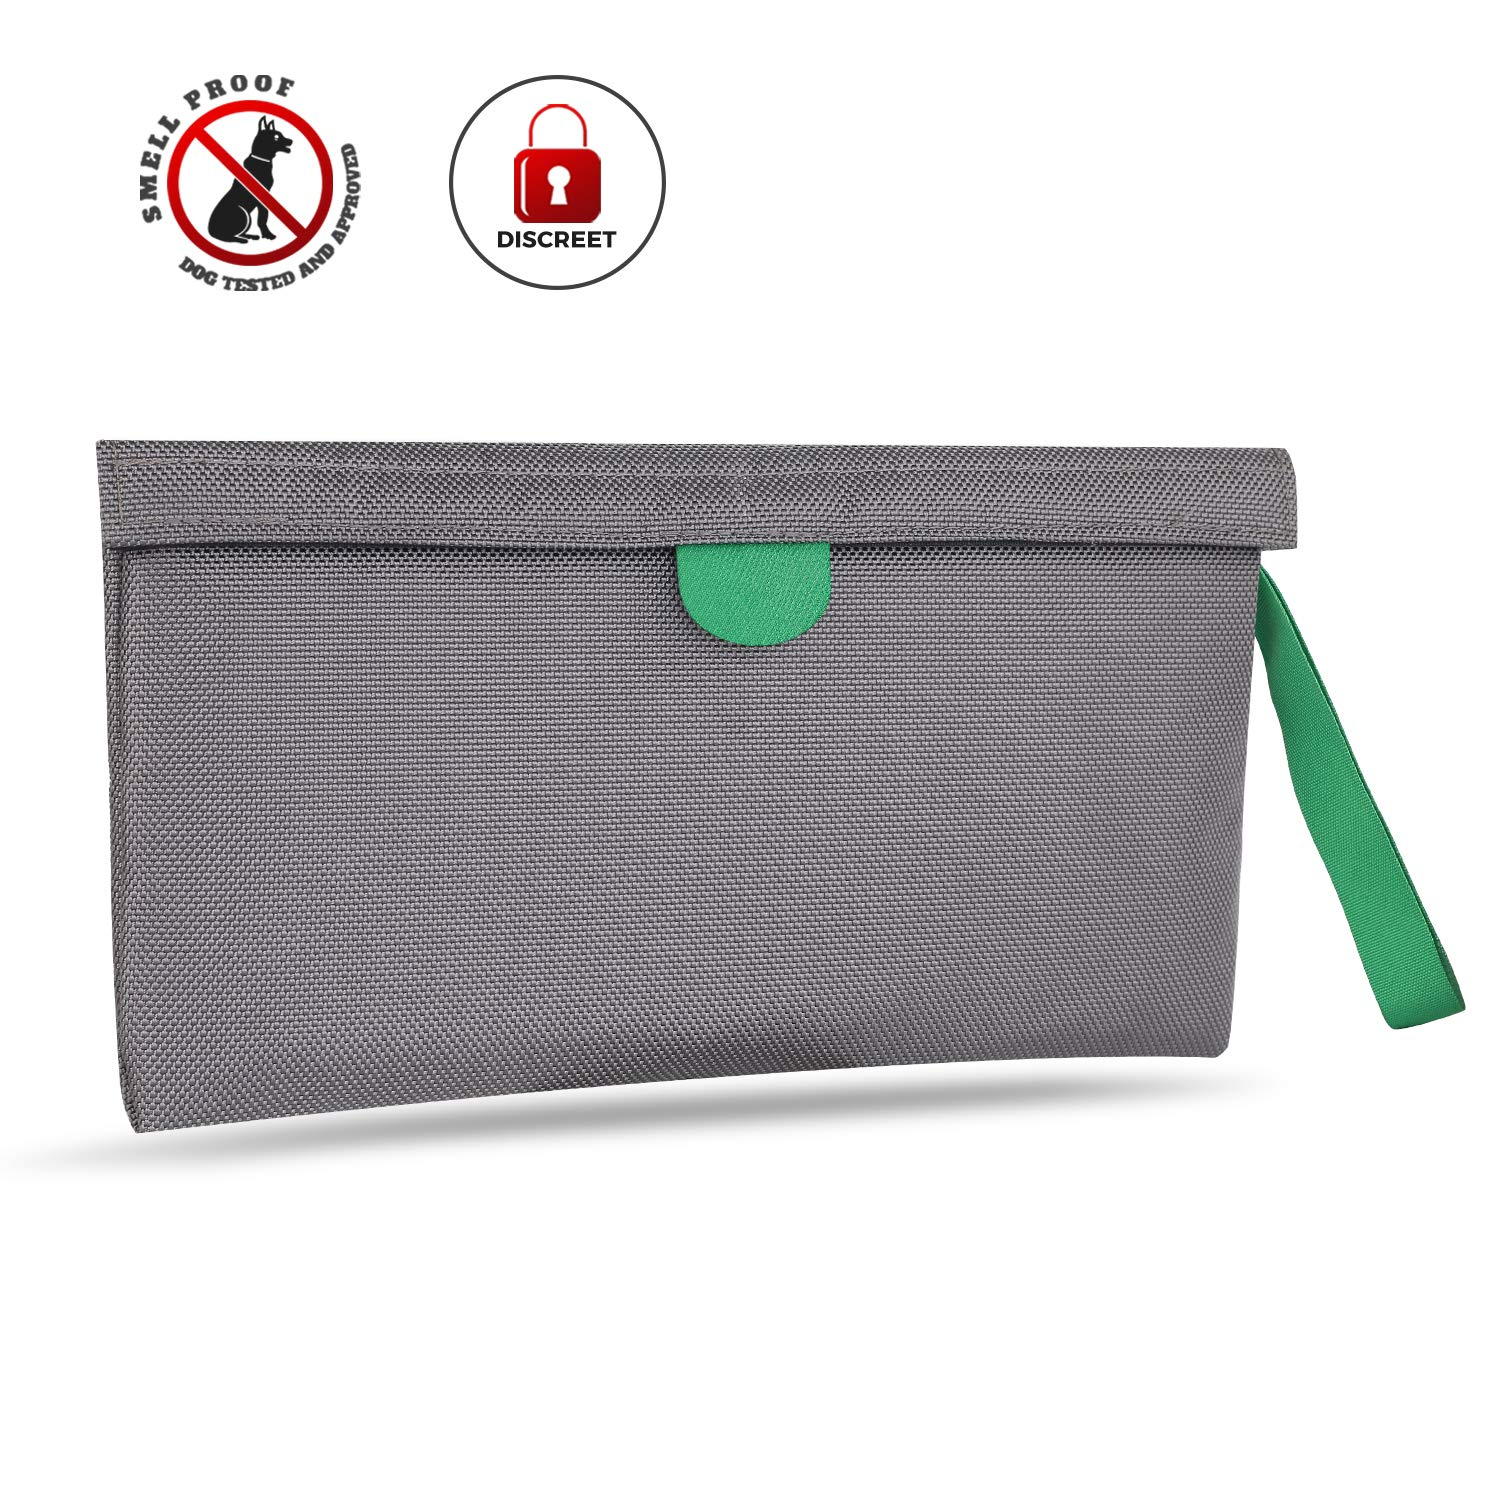 MEIZHI Smell Proof Bag Grey Plant Germination Bag 11x6for Herbs, Spices, Tea, Anything with Strong Odor, Activated Carbon Lining, Odor Absorbing, Water Resistant Grey smell proof bag